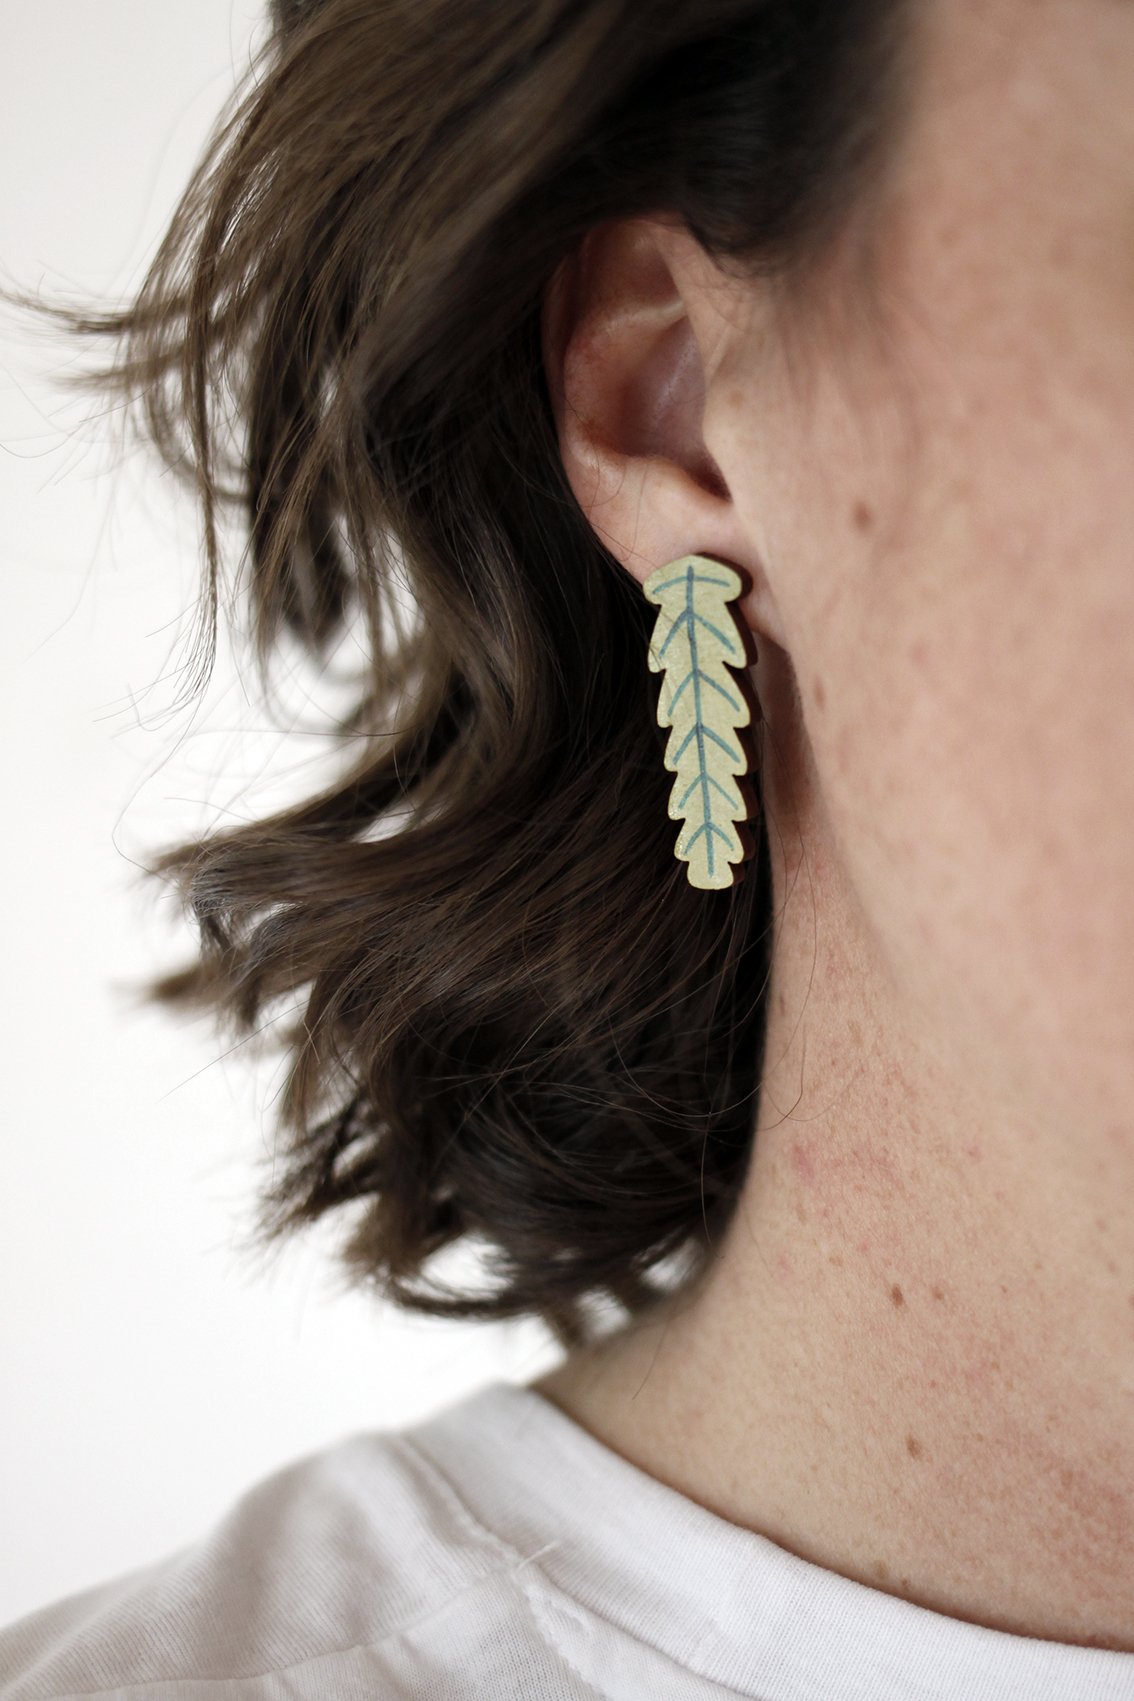 Earrings by  Whimsy Milieu.